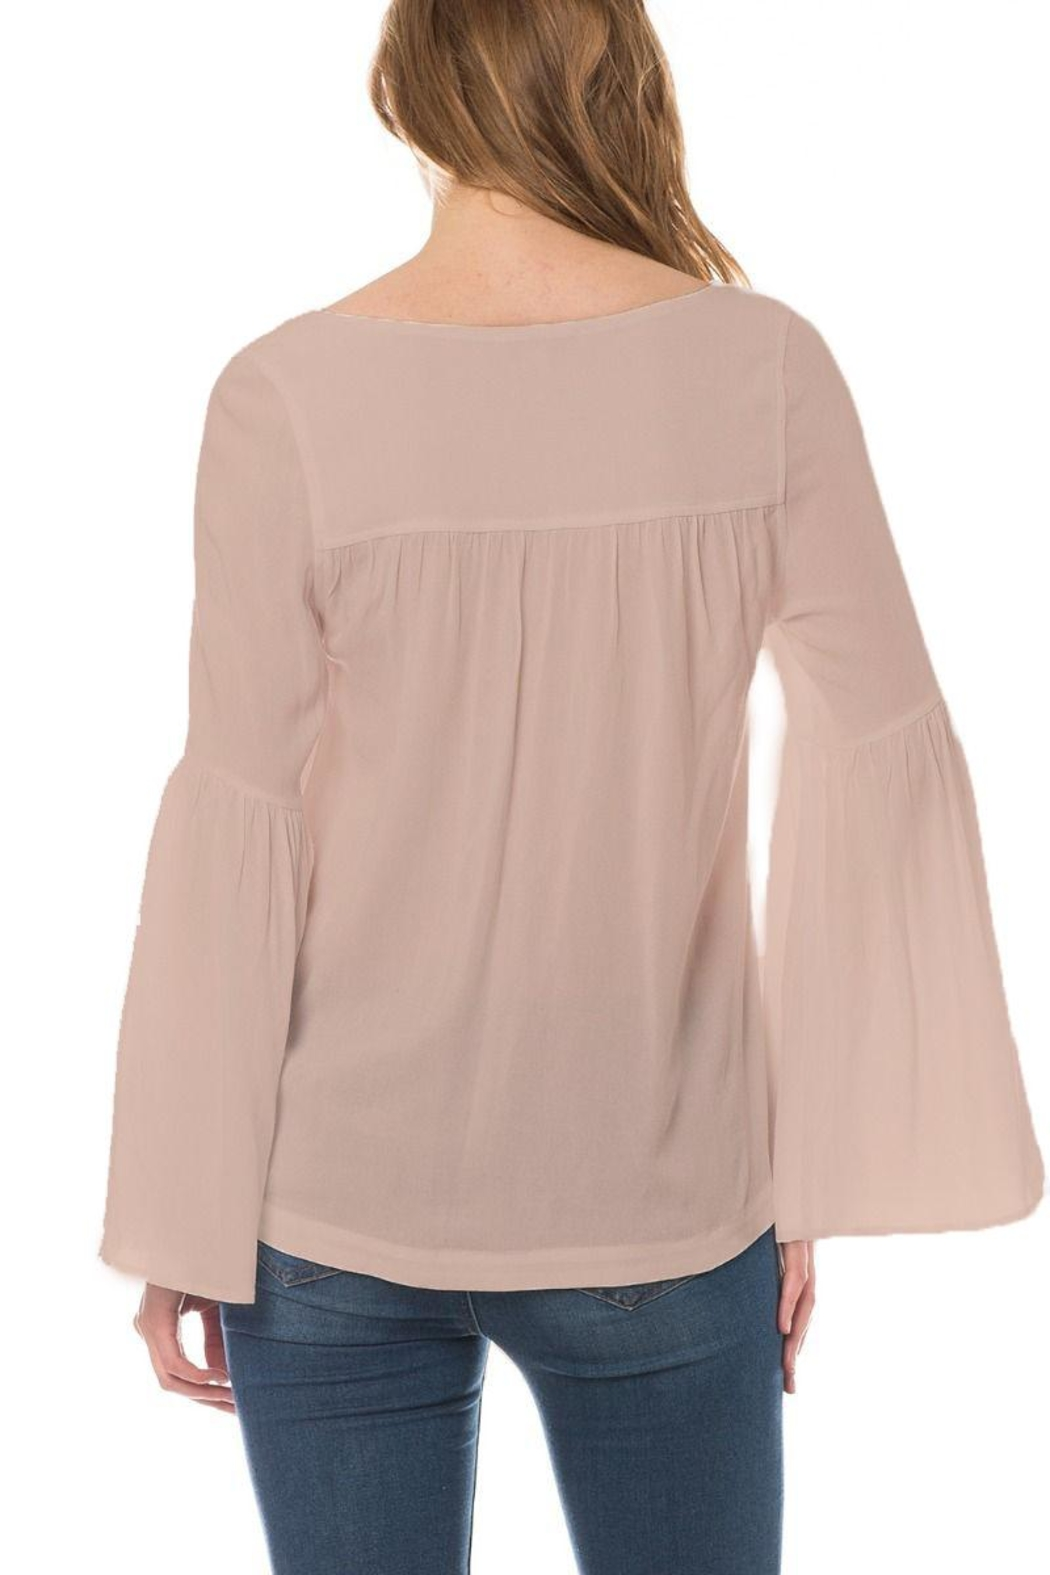 Olivaceous Rene Top Latte - Front Full Image